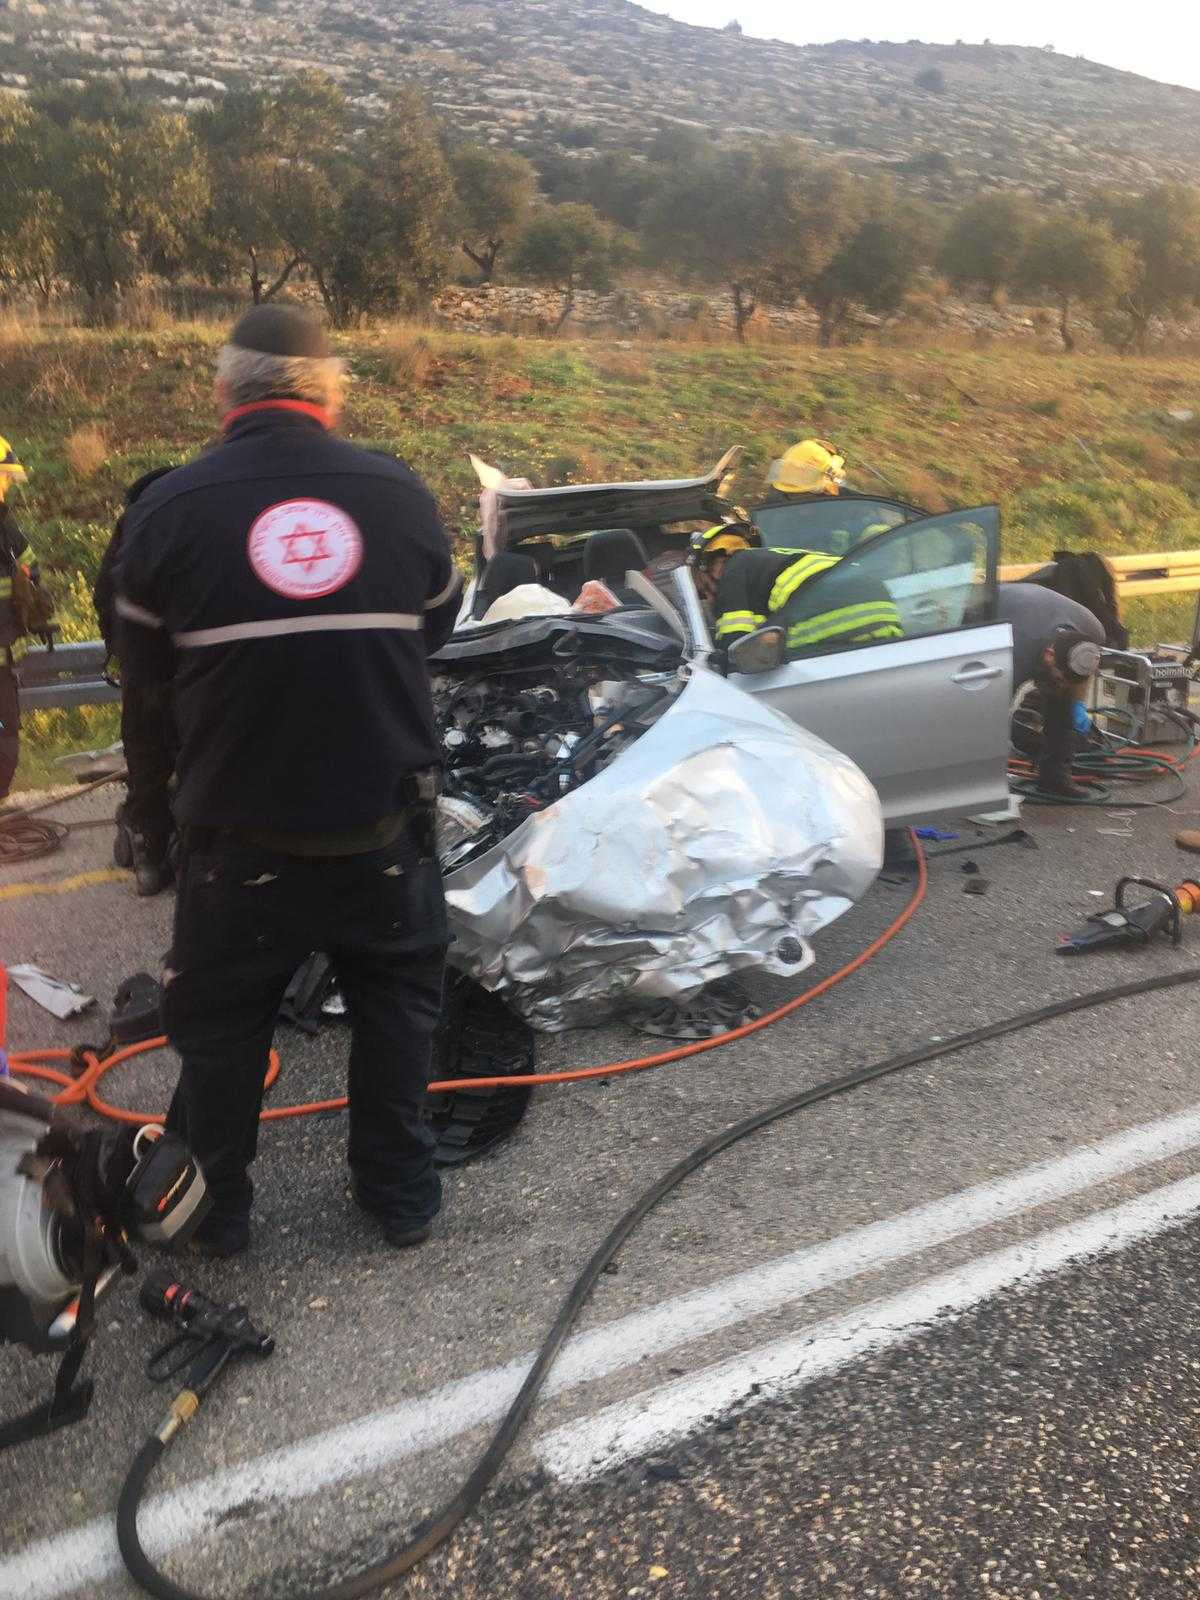 Two dead in head-on collision on central West Bank road | The Times